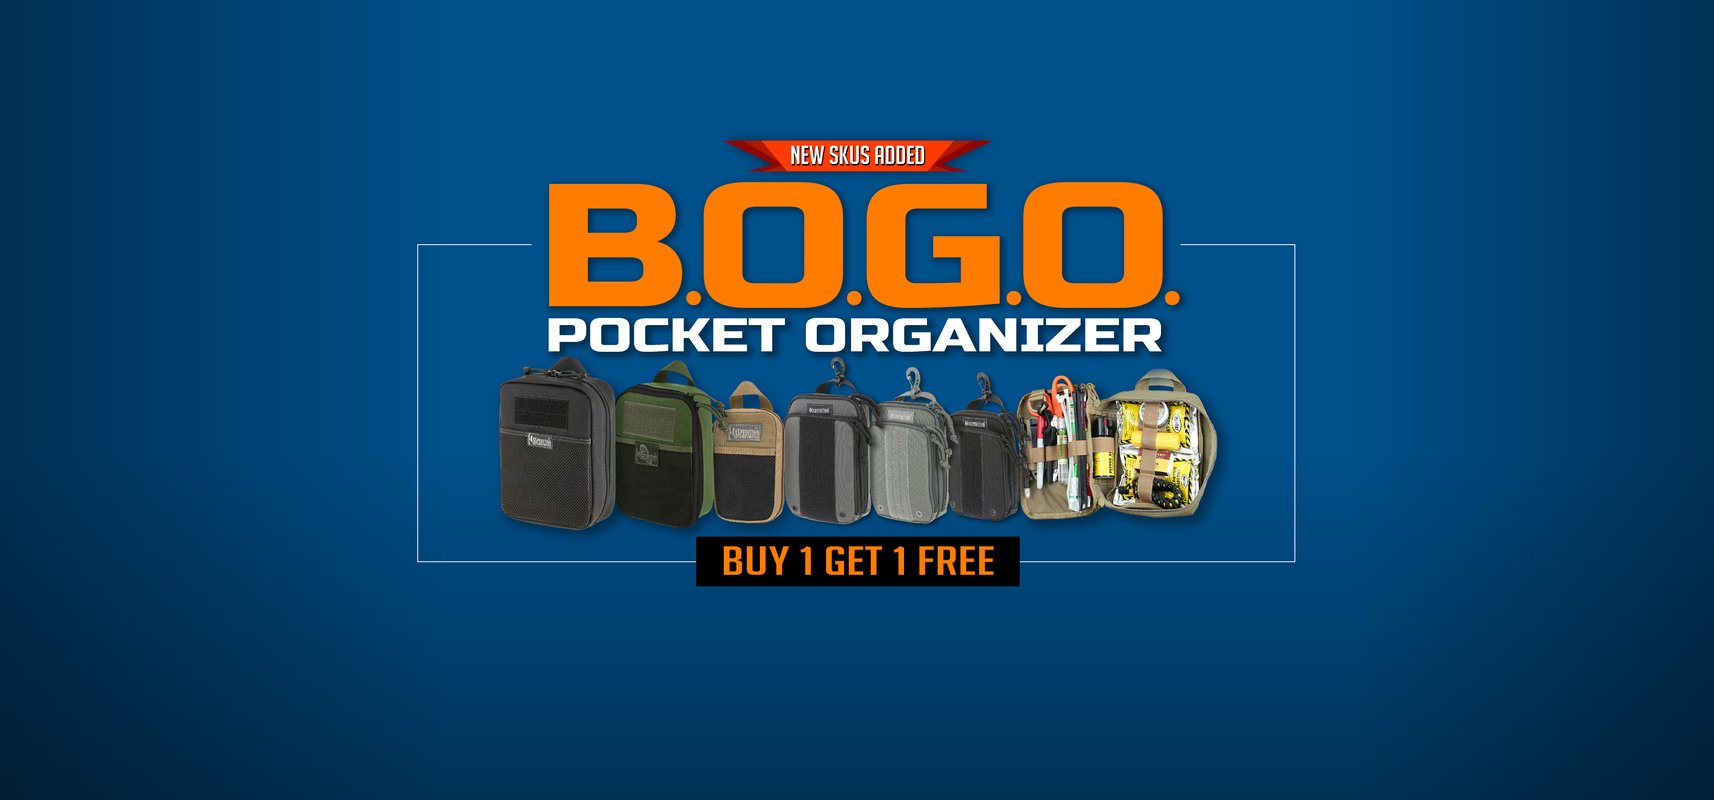 Pocket Organizers BOGO SALE